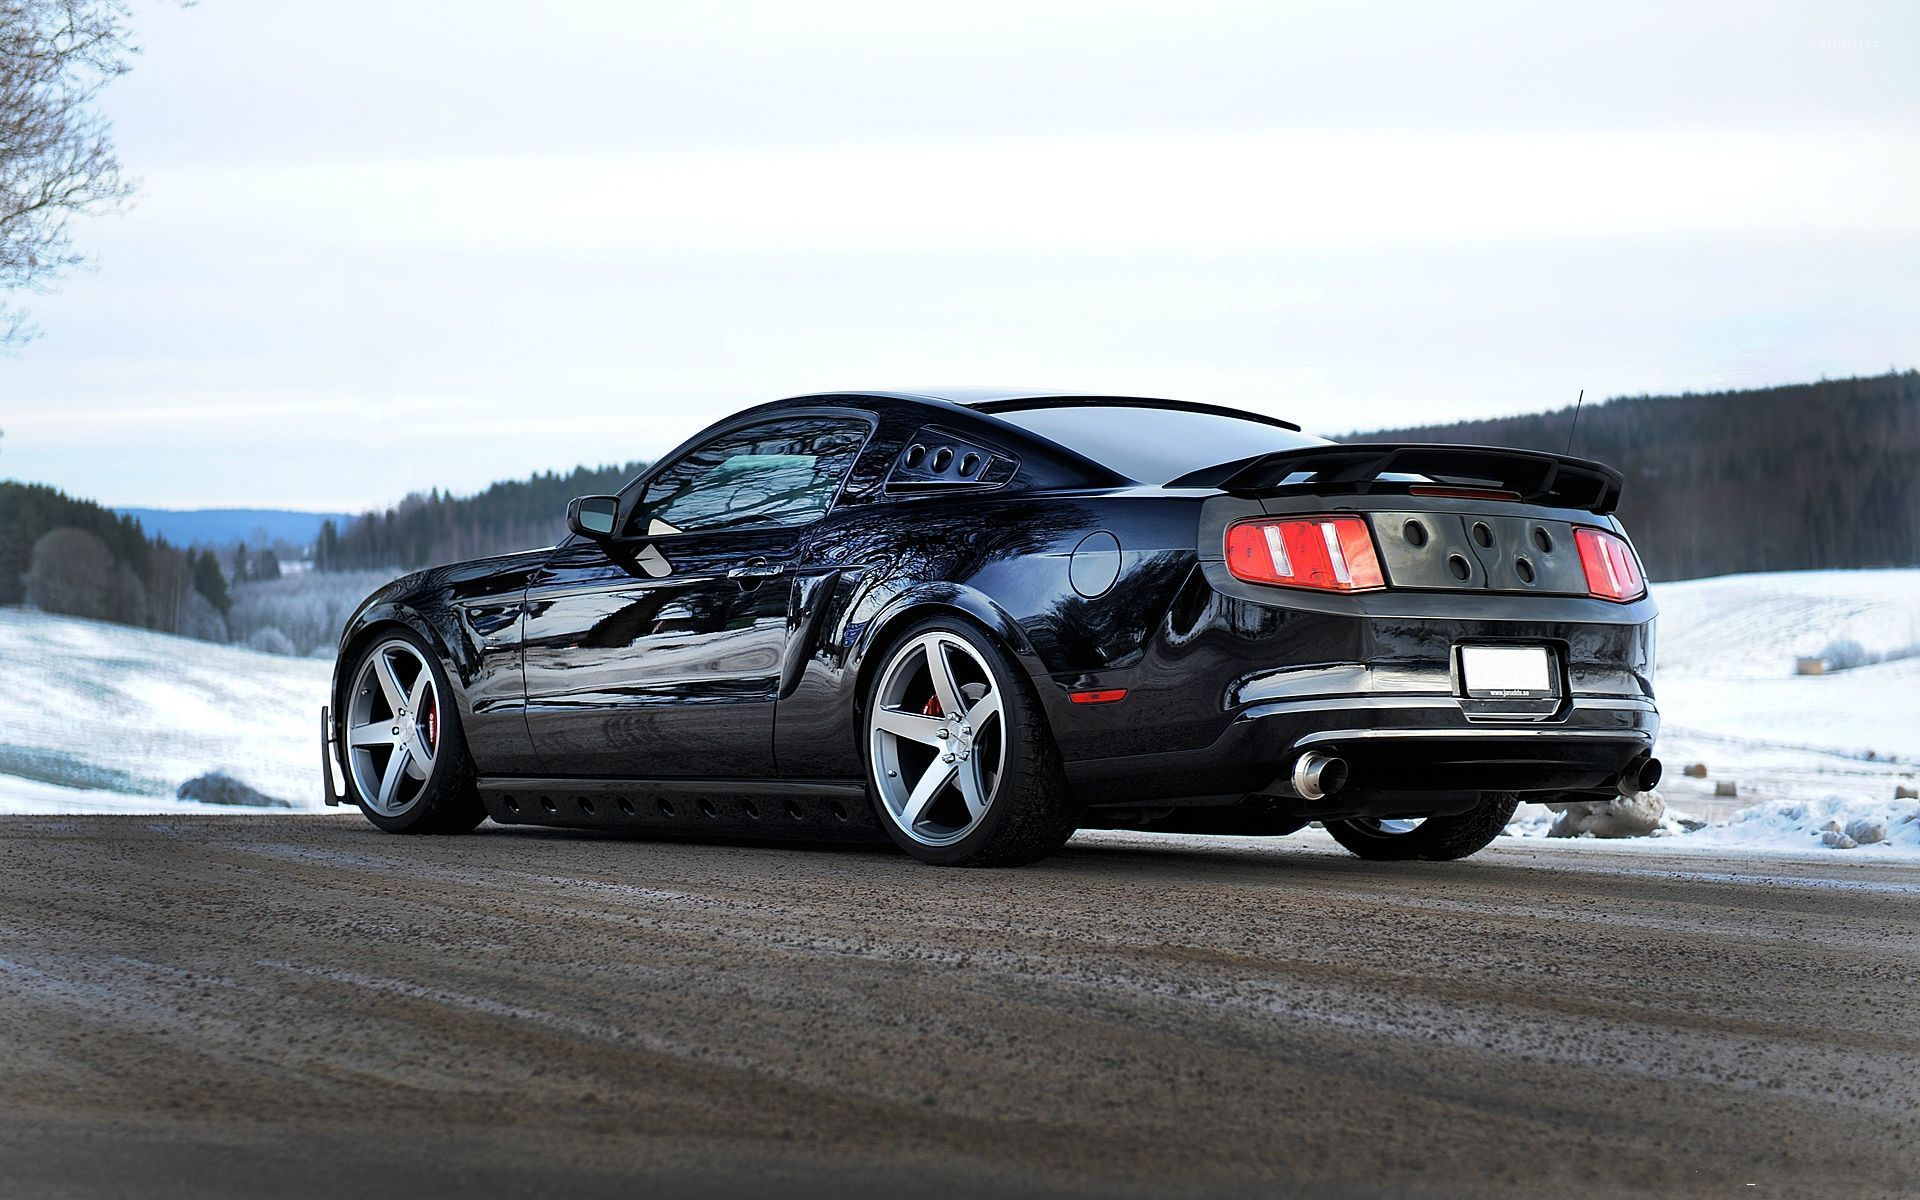 Ford Mustang GT [2] wallpaper